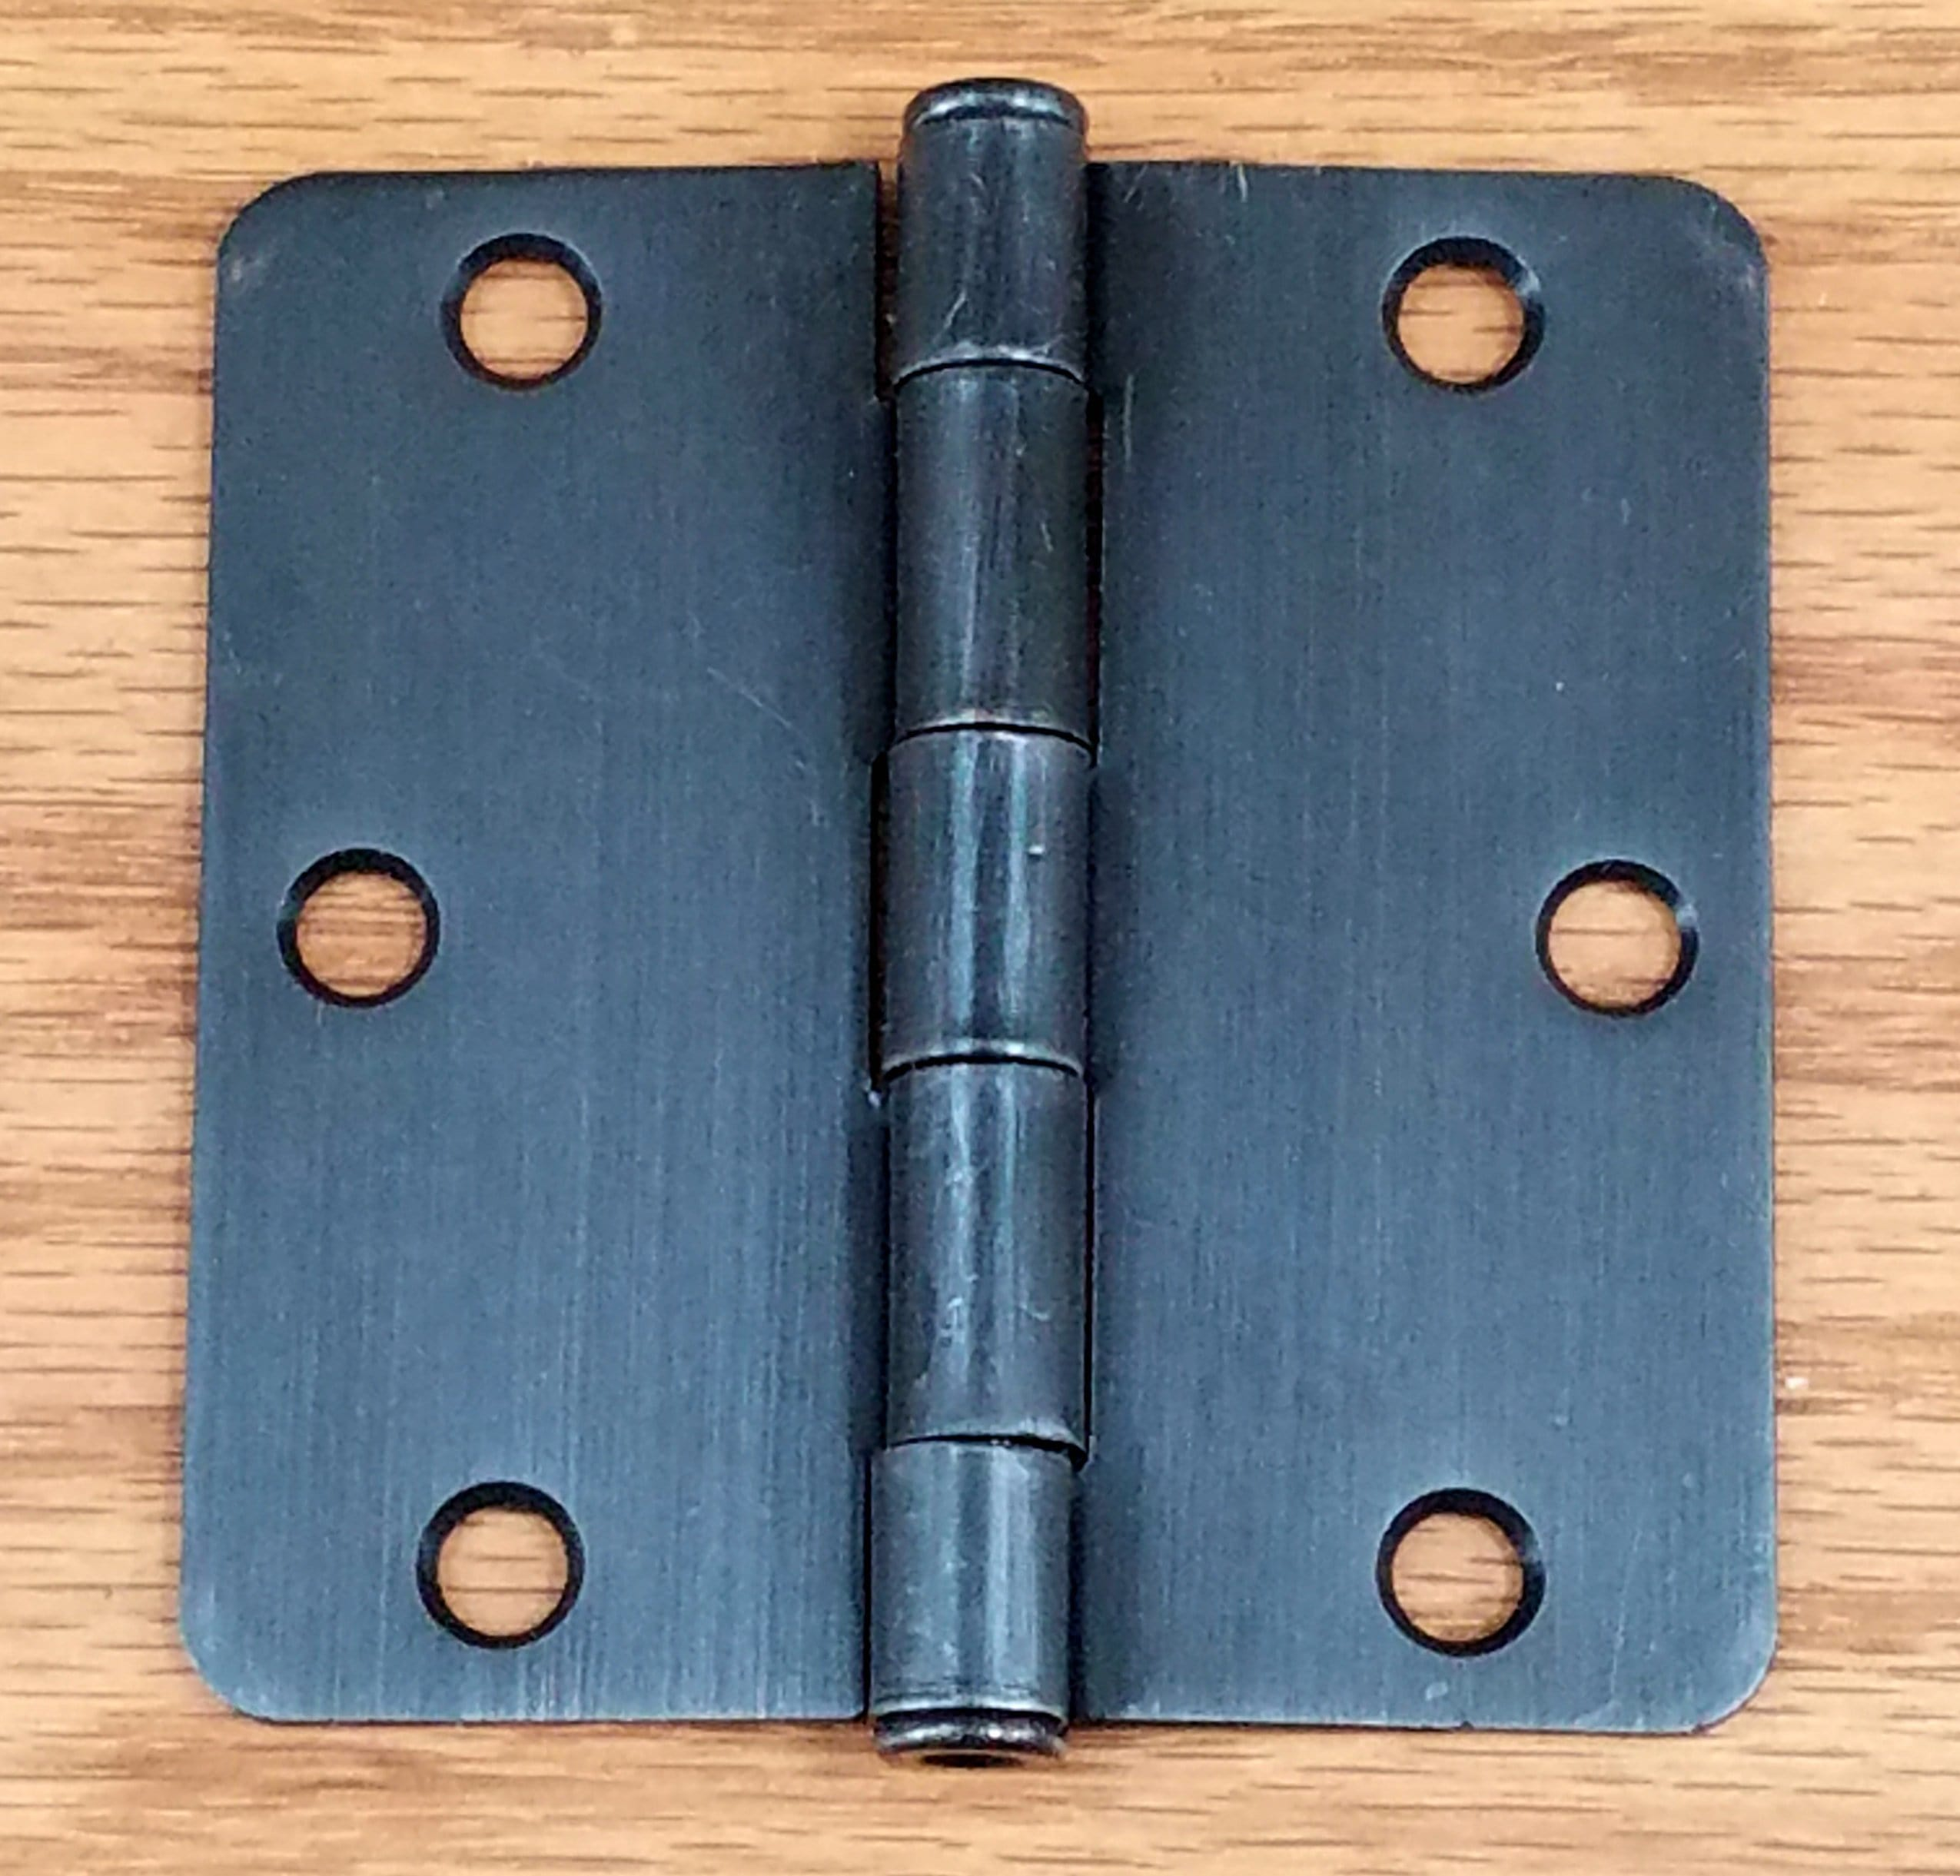 "Oil Rubbed Bronze - Residential Door Hinges - Interior Butt - 3.5"" Inches with 1/4"" Radius - 2 Pack"